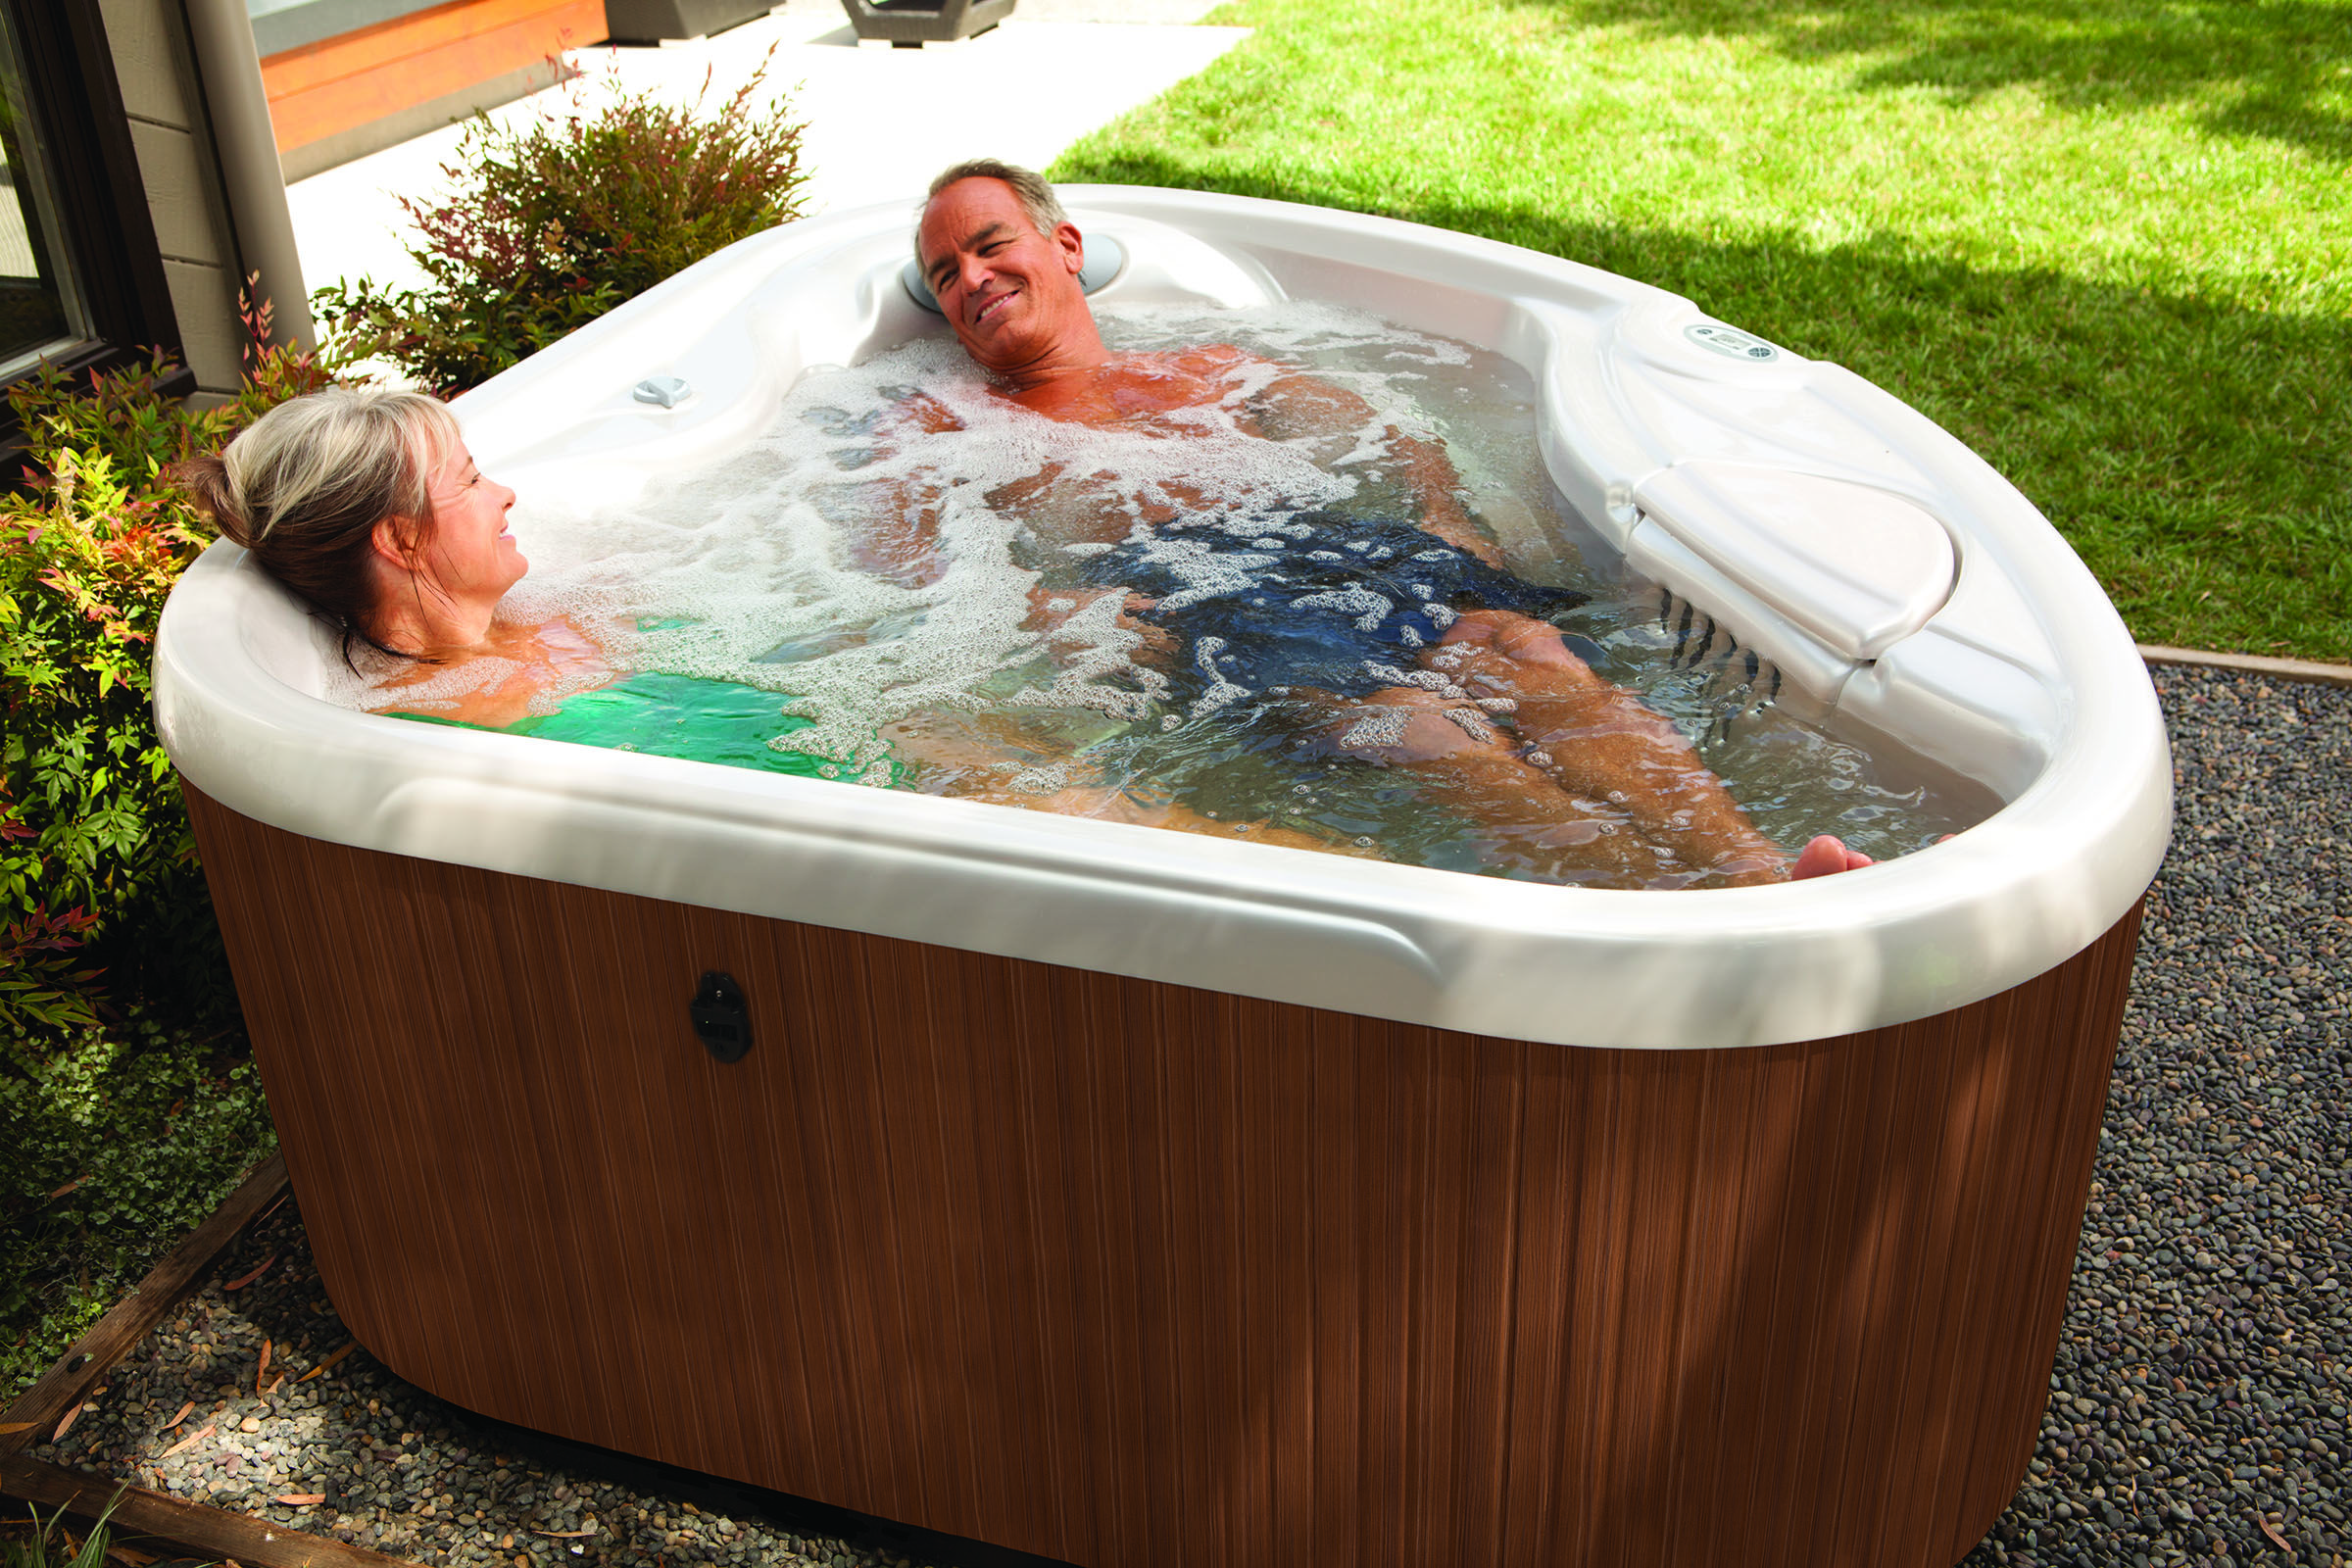 Hot Spot Value Hot Tubs Reviews And Specs Hot Spring Spas Hot Tub Reviews Small Hot Tub Hot Tub Landscaping